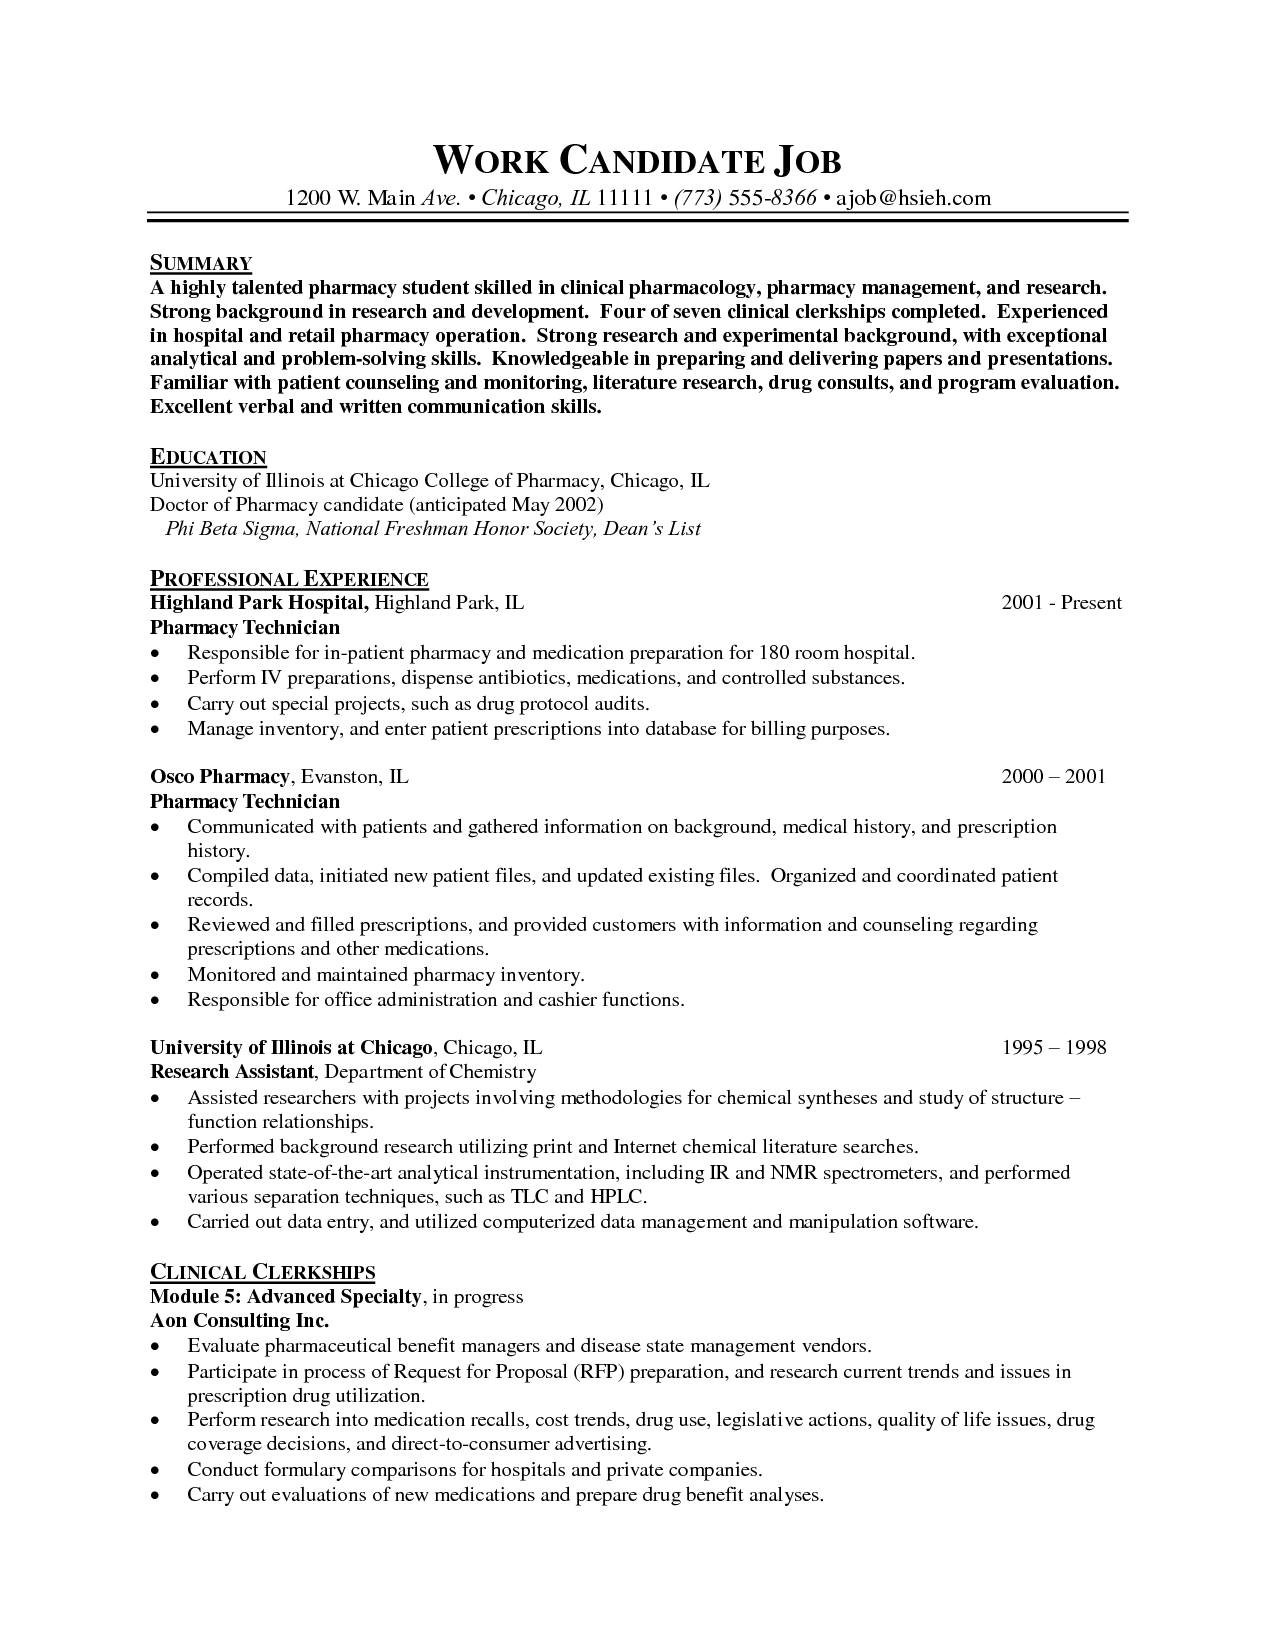 Professional Resume Cover Letter Sample | Get Instant, Risk Free, Access To  The Full  Pharmacist Resume Template